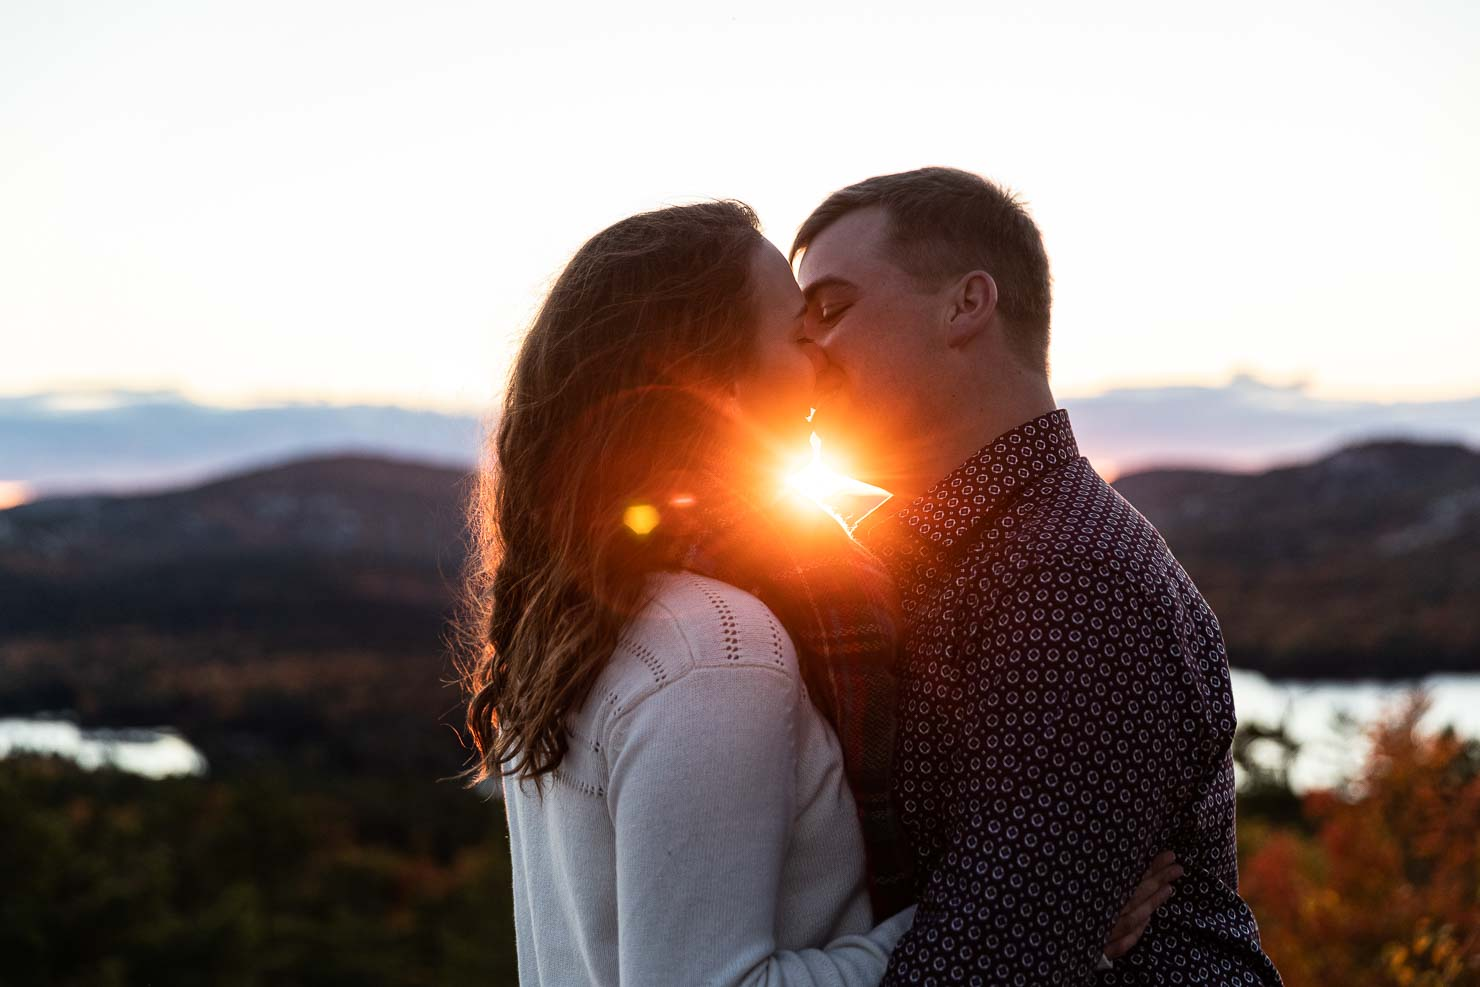 Fall, Sunset, Killarney, The Crack, Engagement Session, Engagement, aKaiserPhoto, Photographer, Sudbury Photographer